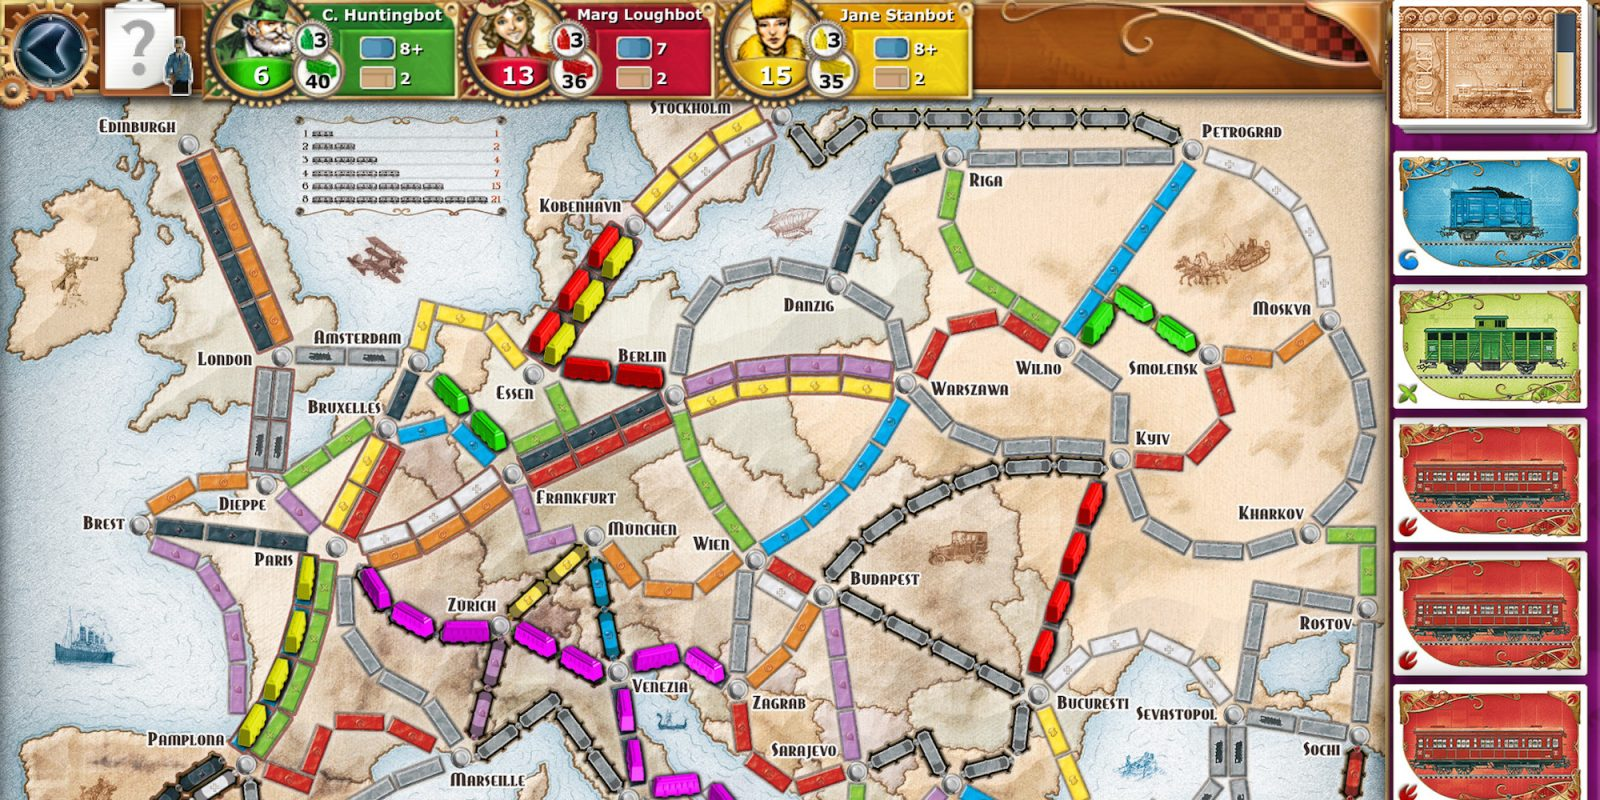 Ticket to Ride for iOS now matching lowest price in years at $2 (Reg. $5)